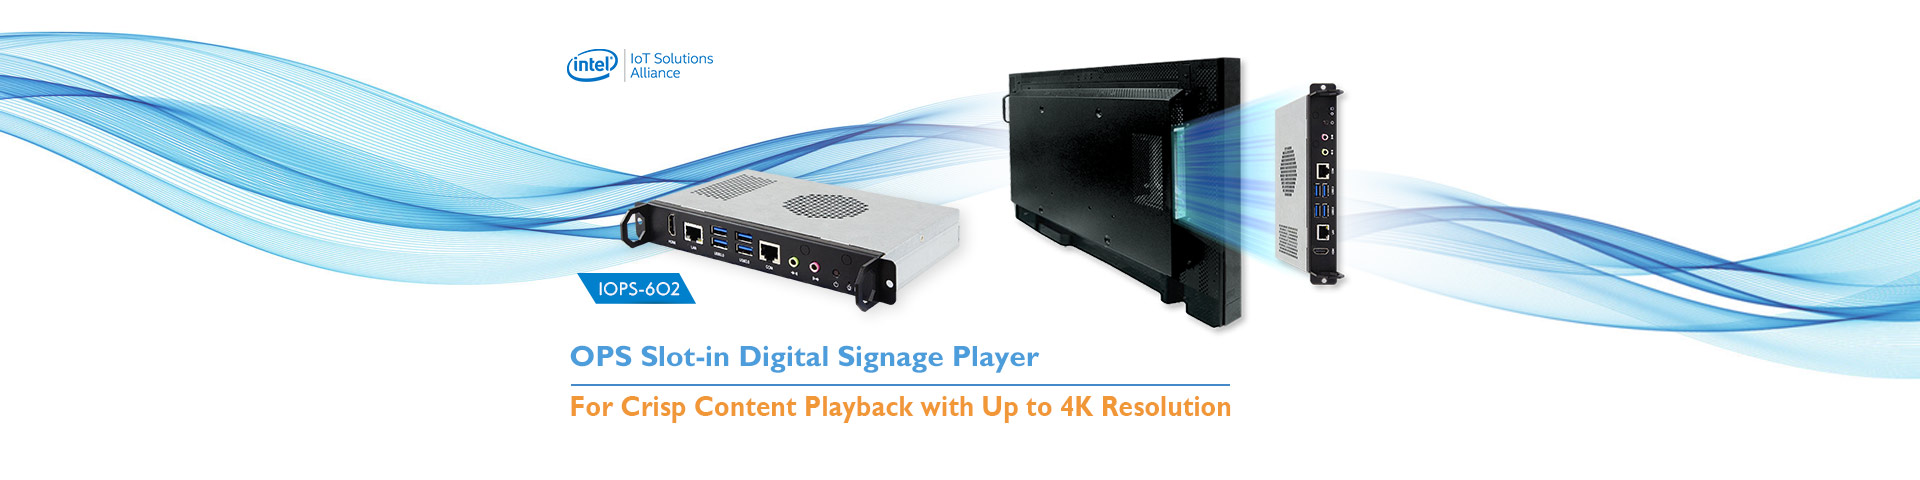 IOPS-602 OPS Slot-in Digital Signage Player